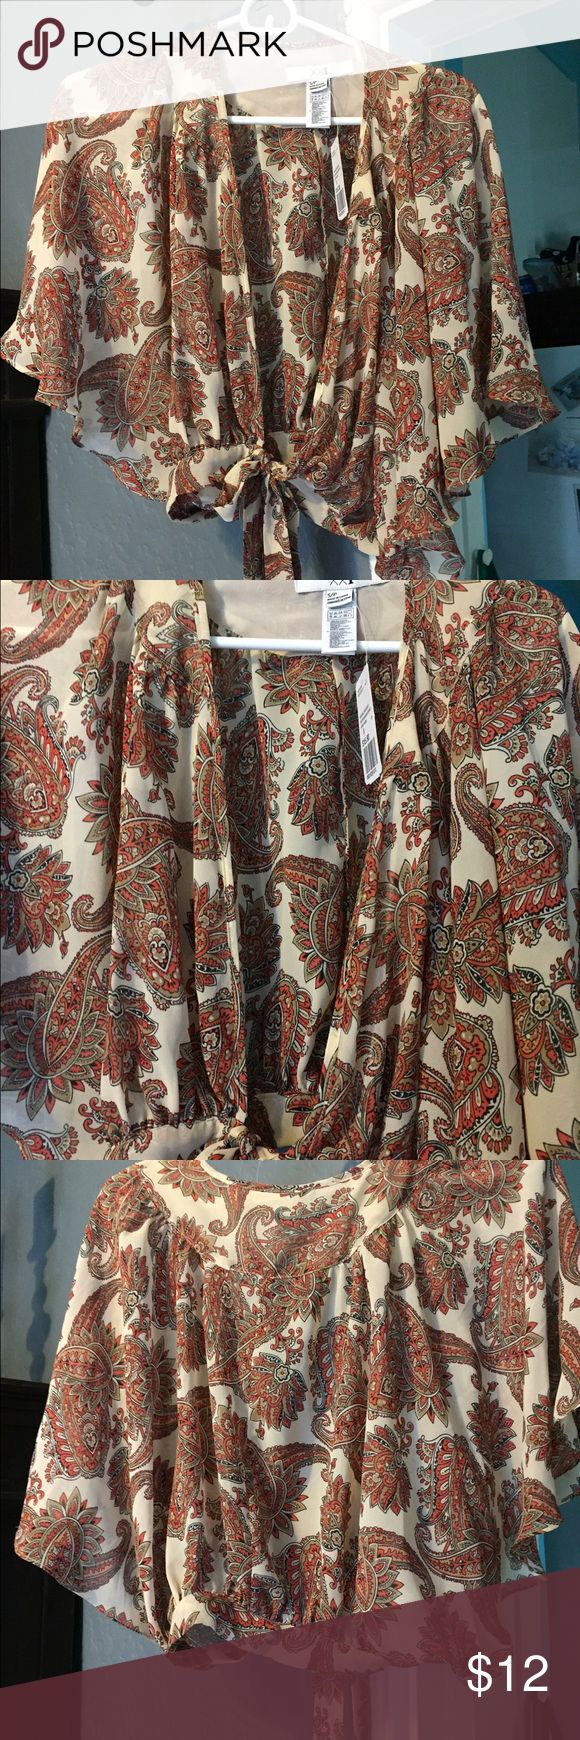 Boho festival blouse! New with tags Super cute boho festival blouse new Tops